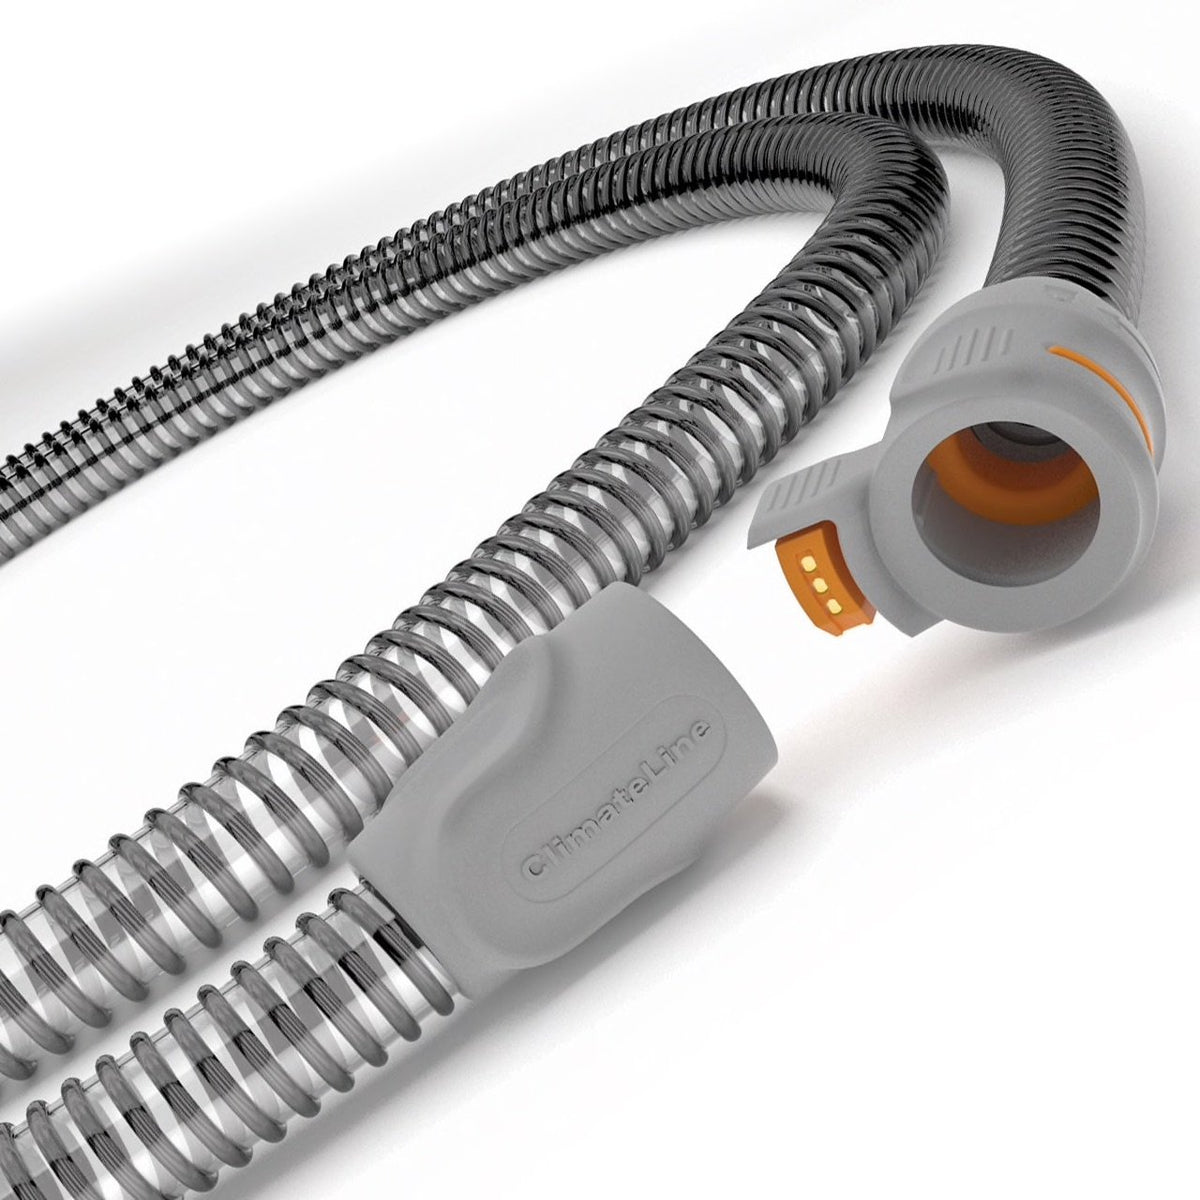 Resmed climateline max tubing for cpap and bipap machine